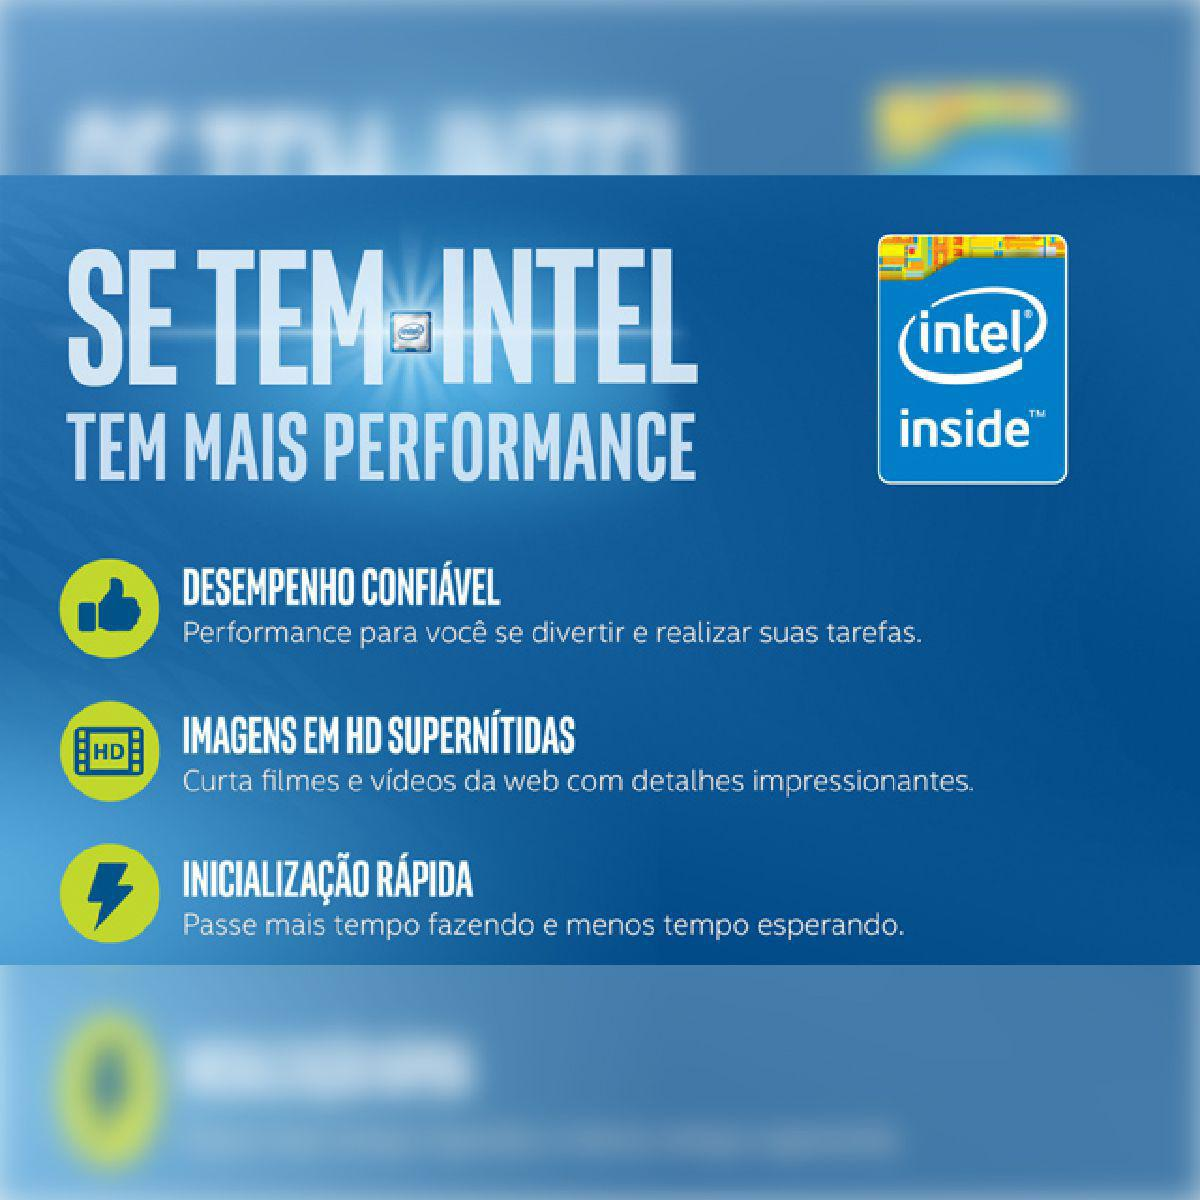 Pc Gamer Completo Intel I5 8gb Hd 500gb Placa De Video Monitor